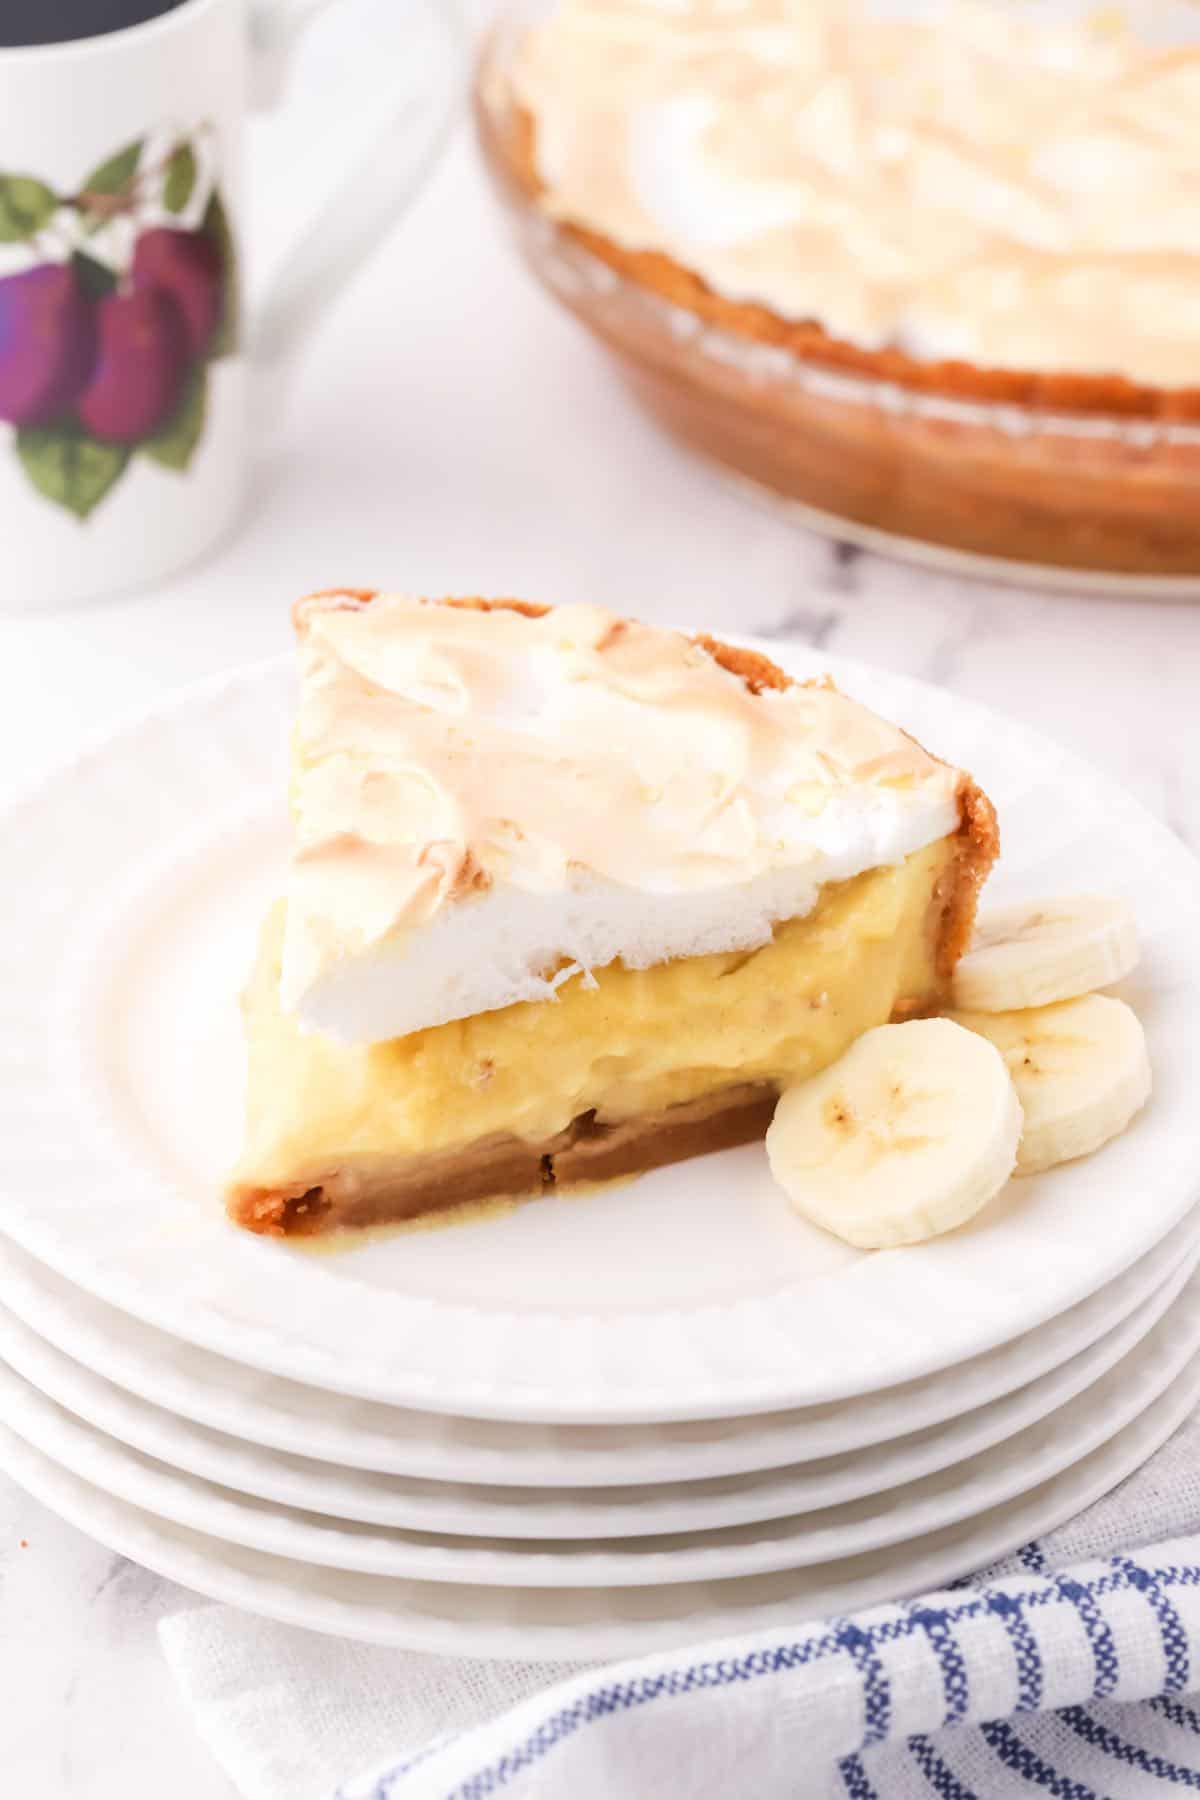 A slice of banana pudding pie on a white plate.